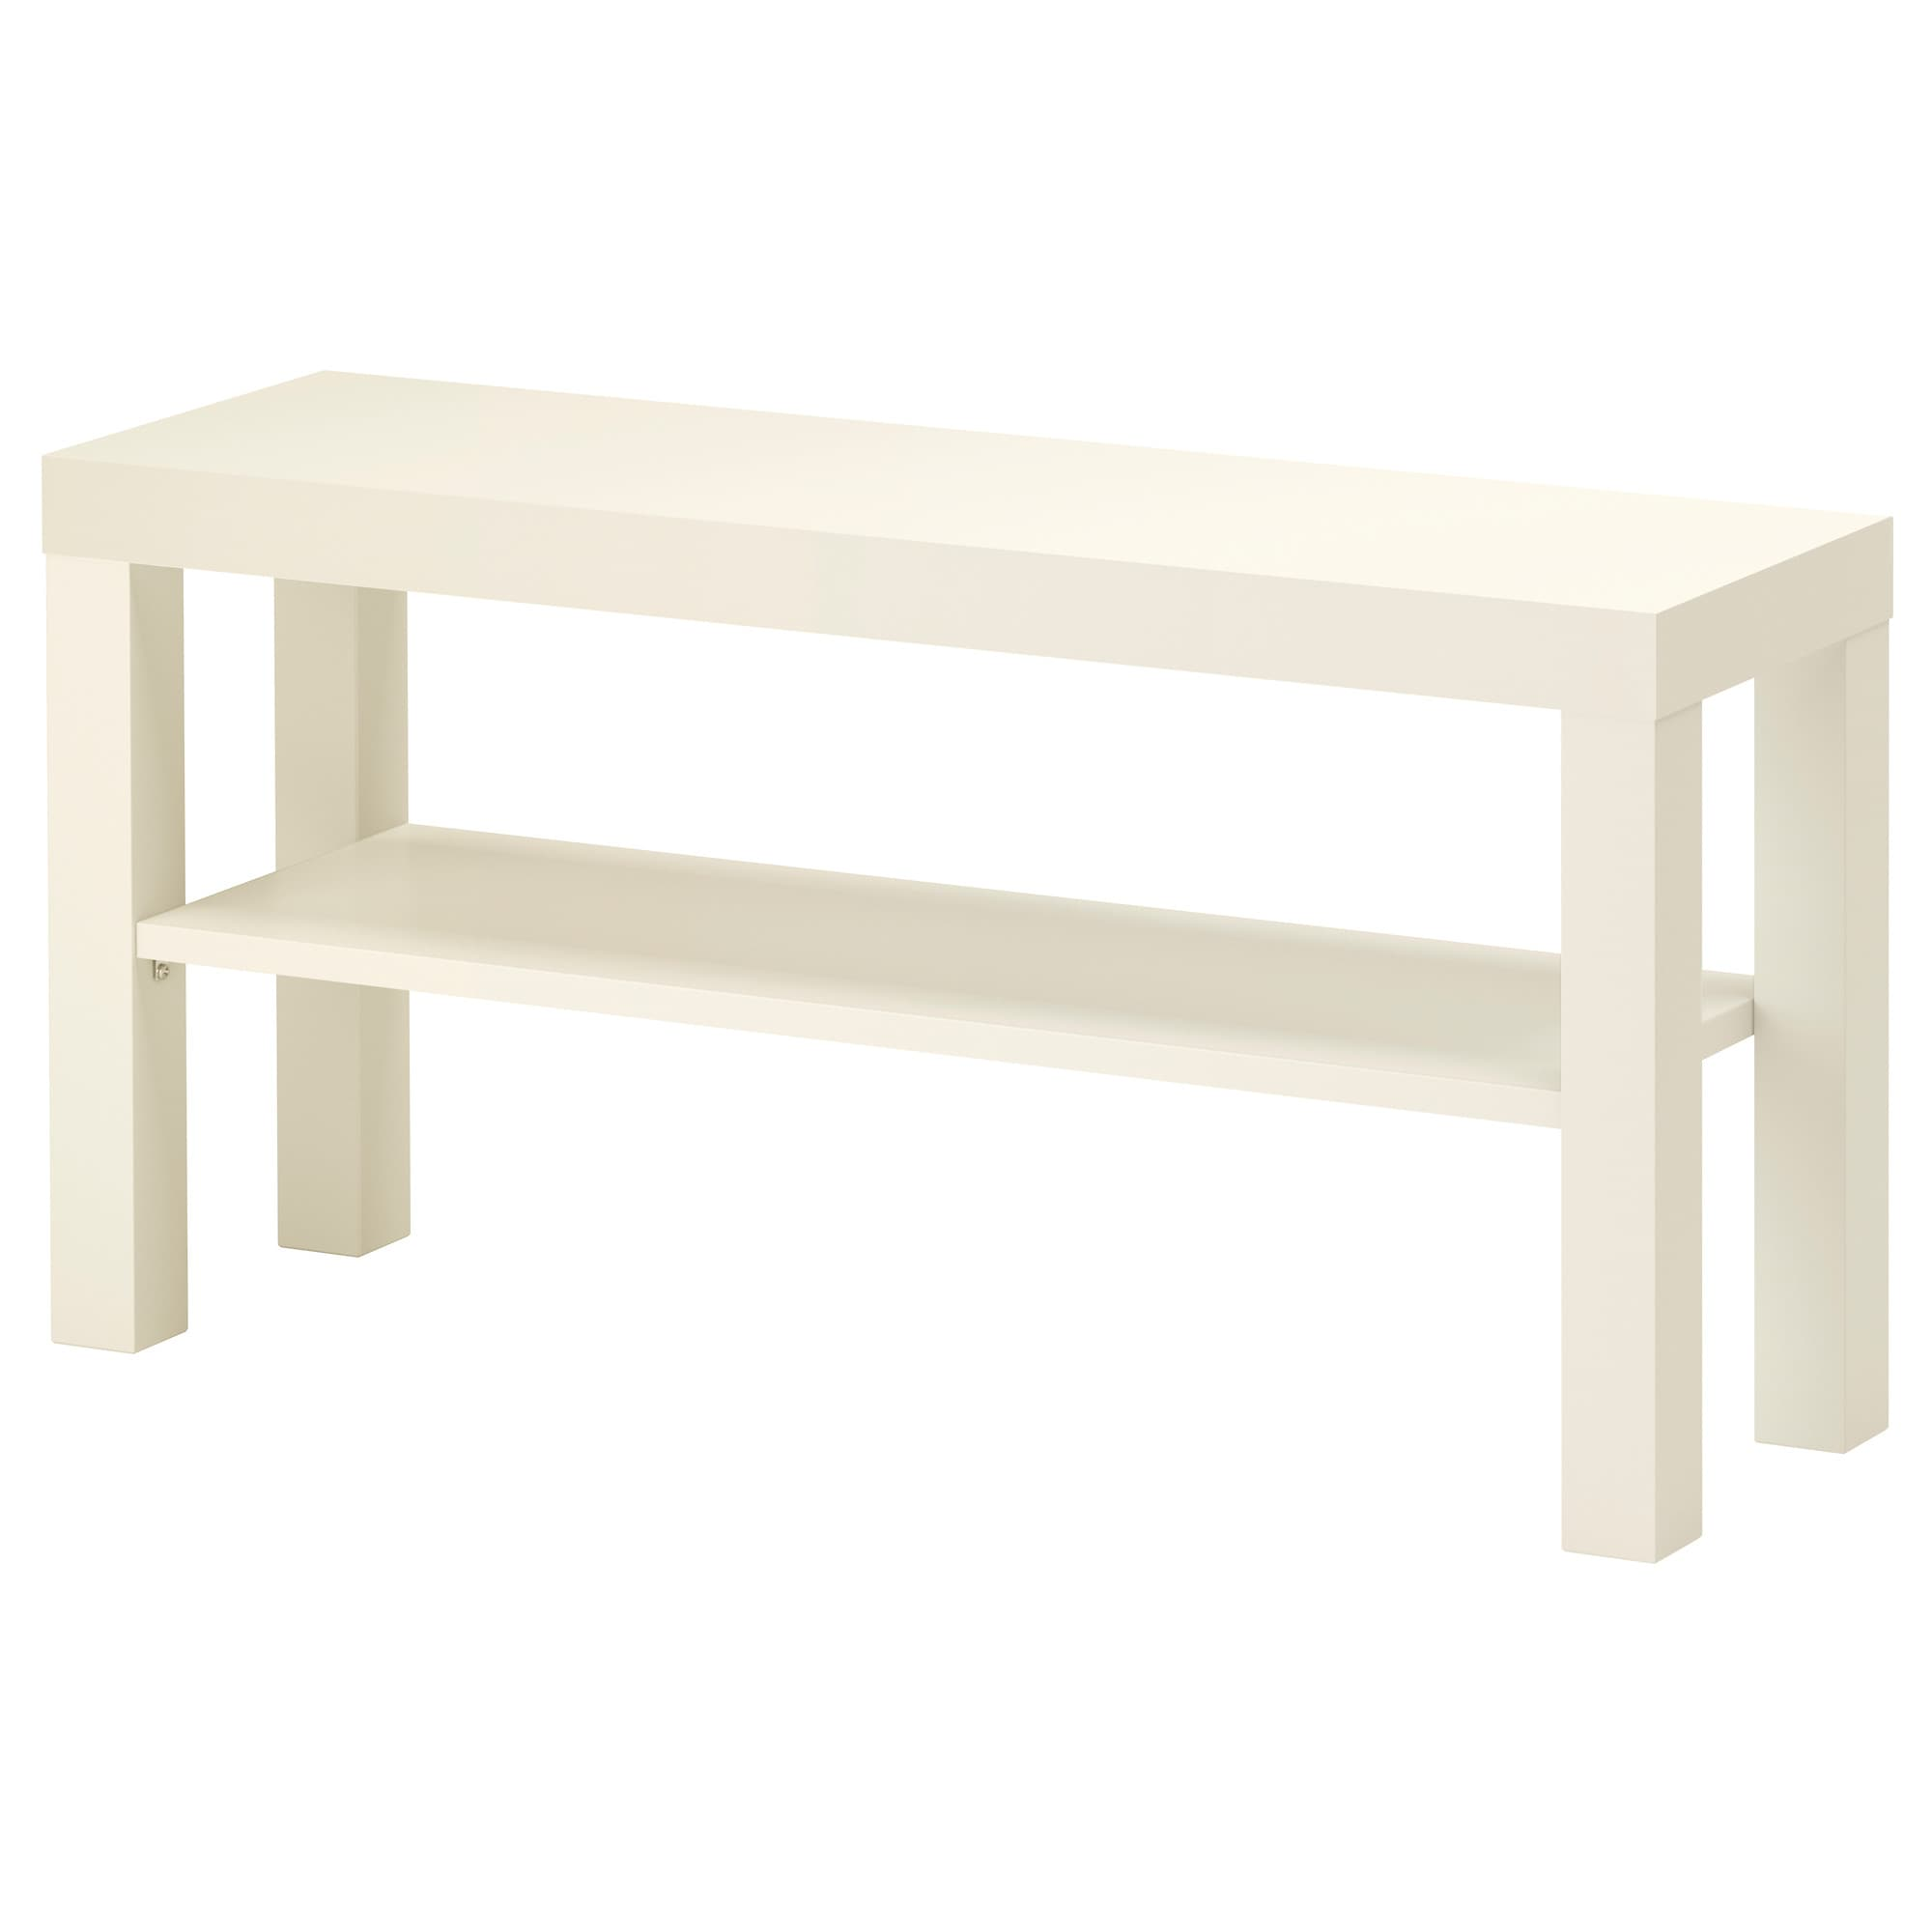 Awe Inspiring Ikea Lack White Tv Unit Ikea Tv Cabinet Ikea Tv Bench Gamerscity Chair Design For Home Gamerscityorg